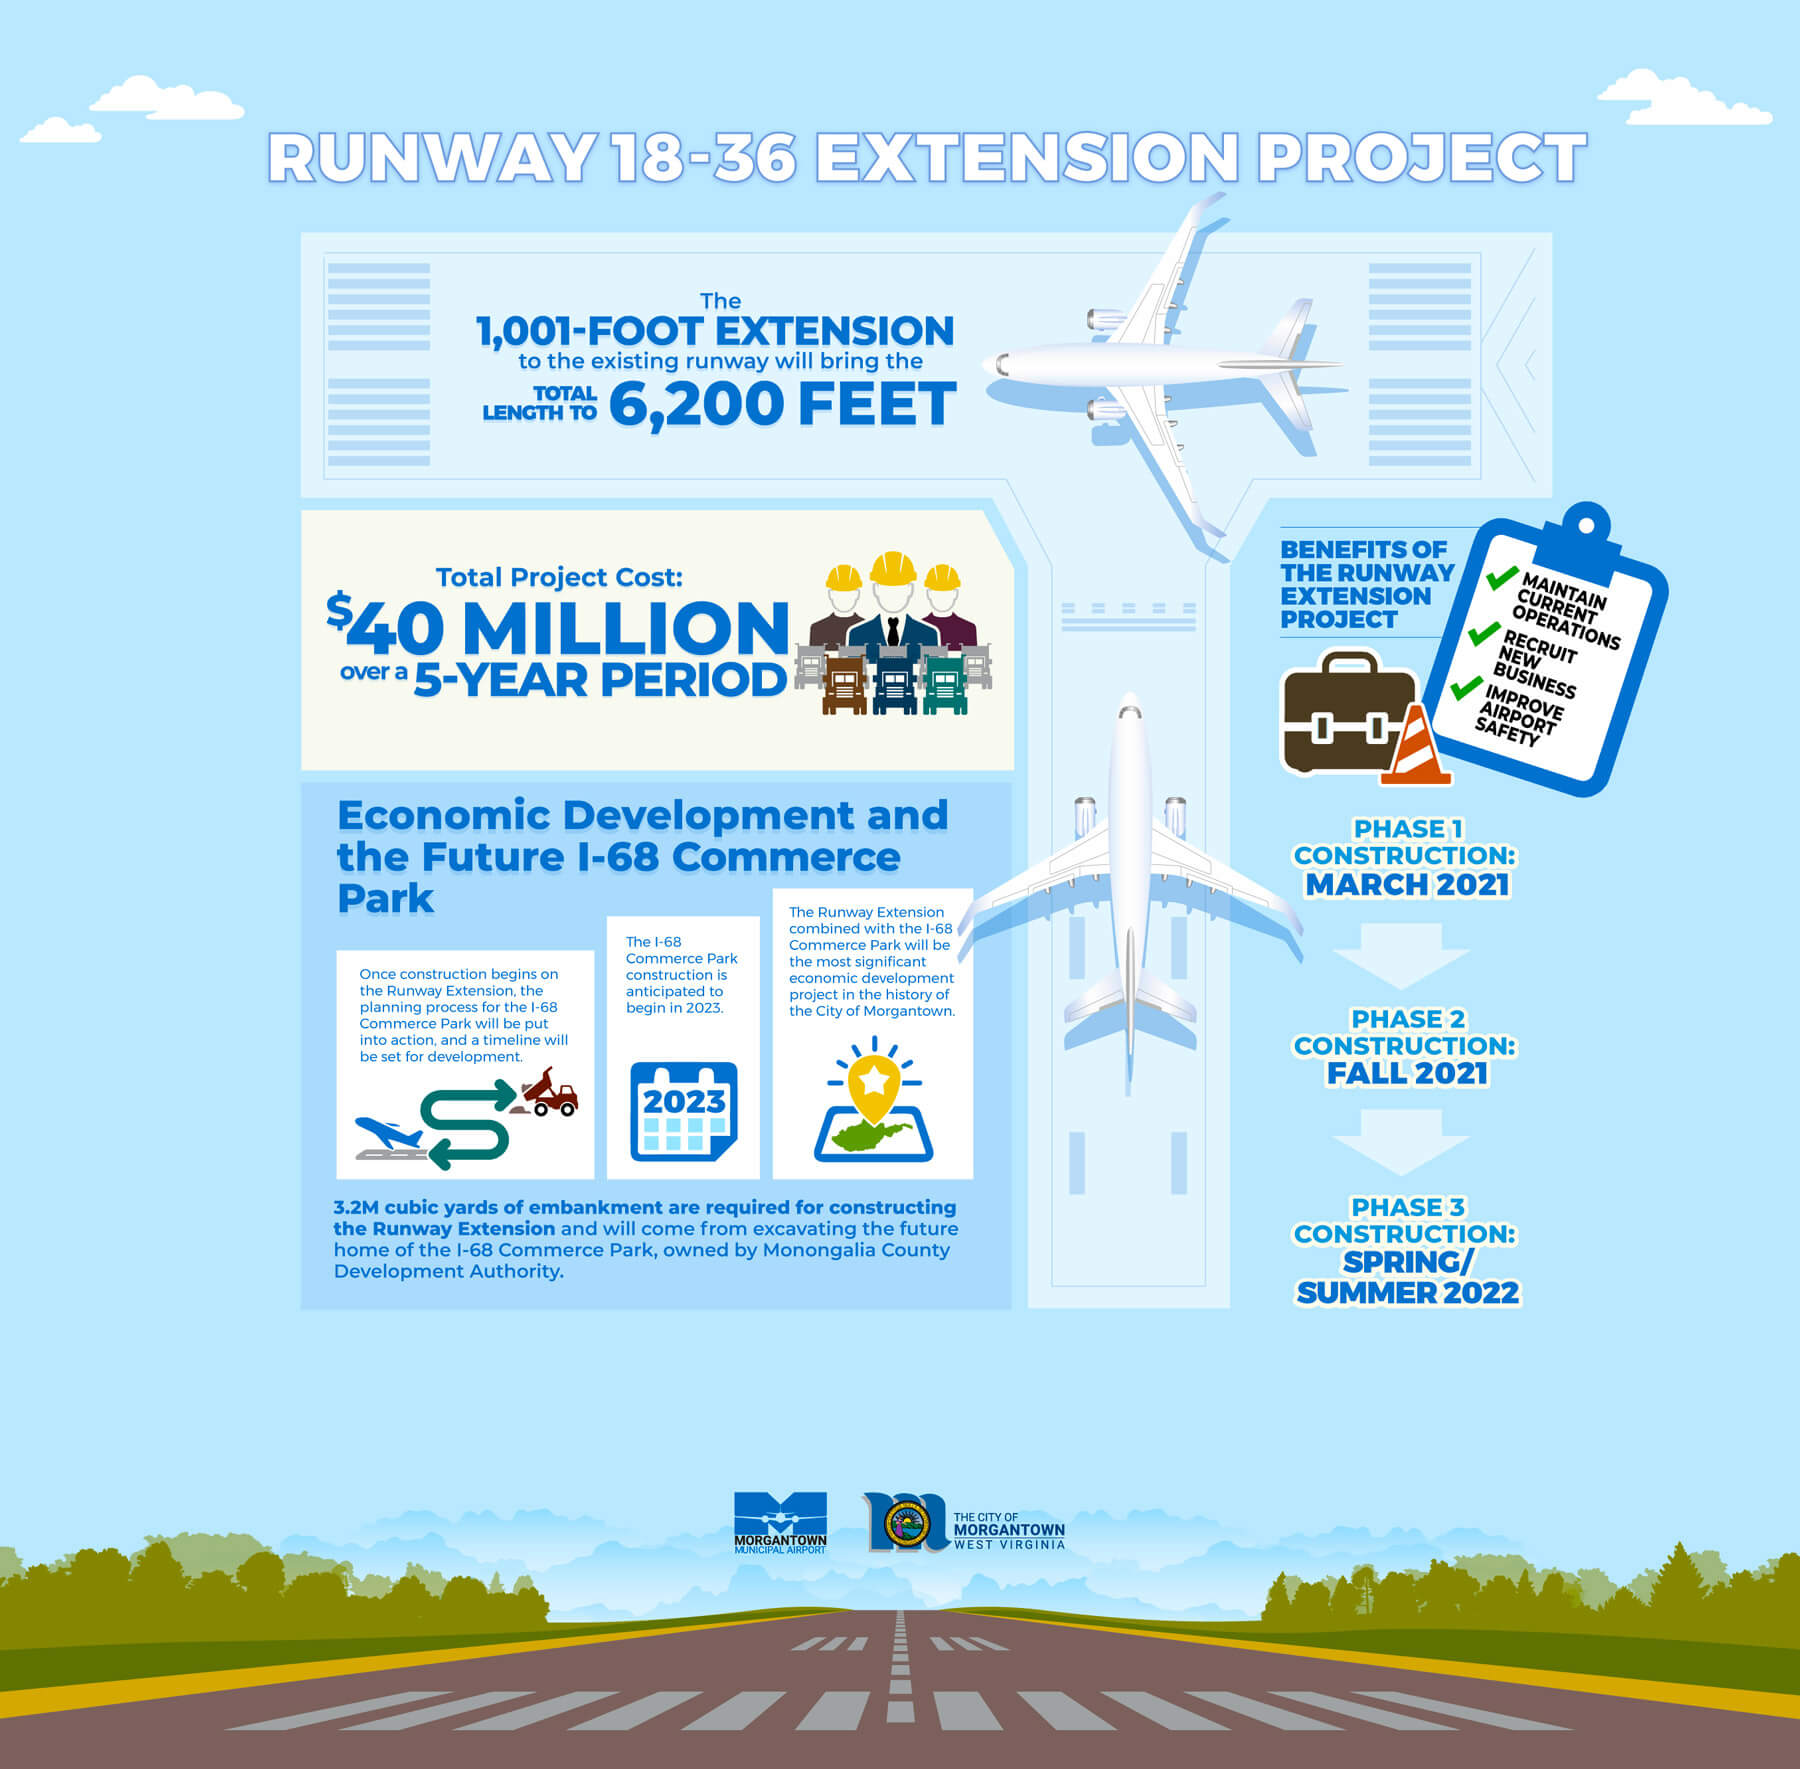 Morgantown Municipal Airport Runway 18-36 Extension Project Infographic